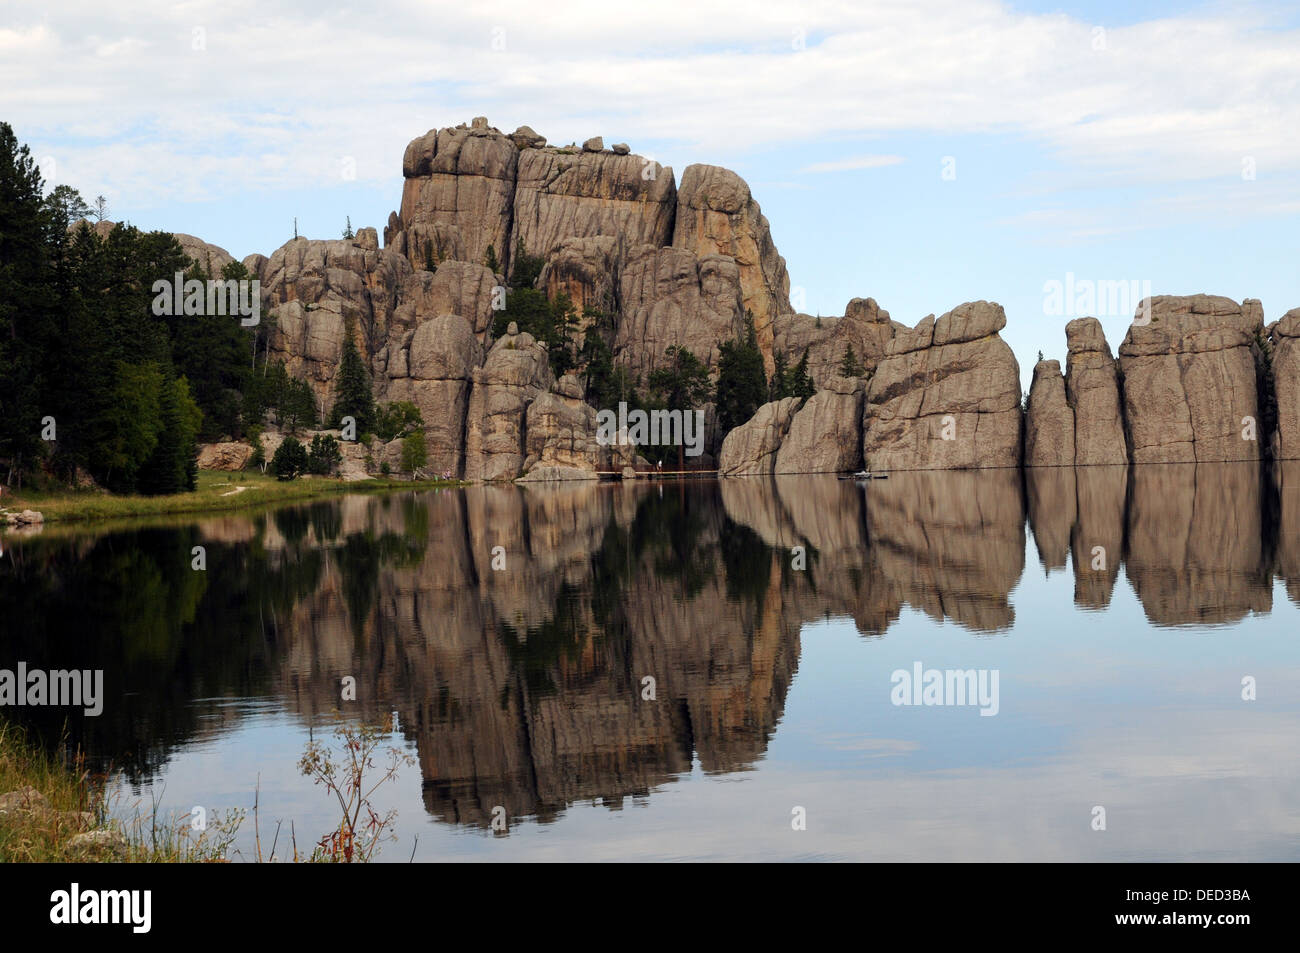 Sylvan Lake. Custer State Park. Part of the dam built by Theodor Reder in 1881. - Stock Image